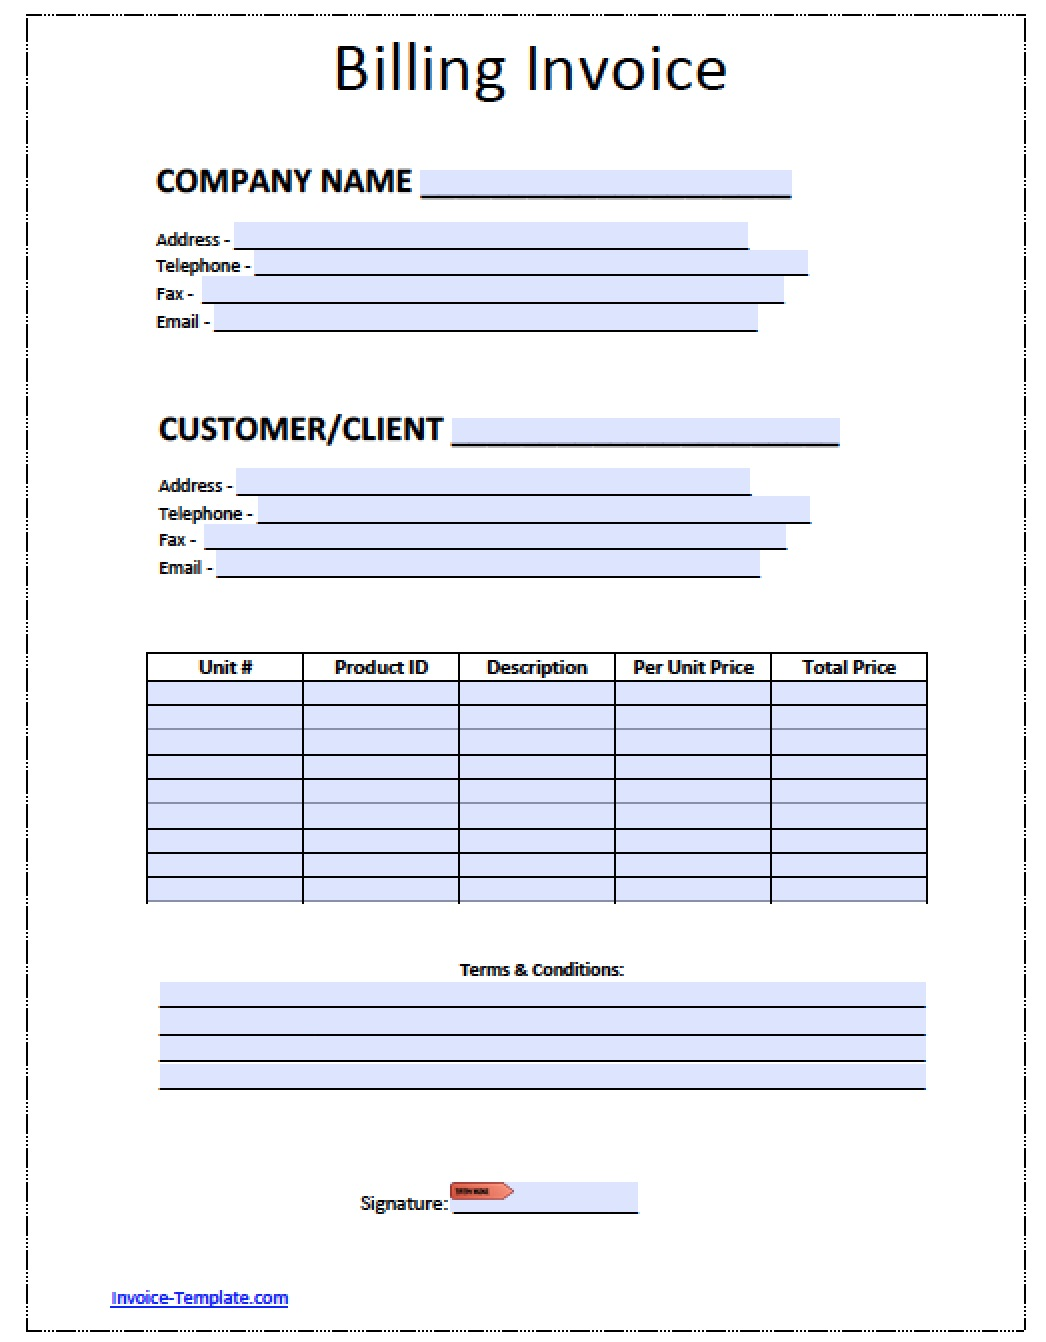 Pxworkoutfreeus  Terrific Billing Invoice Invoices Faq U Cloudflare Support Billing  With Exquisite Free Billing Invoice Template  Excel  Pdf  Word Doc  Billing With Archaic Dealer Invoice Cost Also Template Invoice Word In Addition Ebay Invoice Template And Download Invoice As Well As Invoice Manager App Additionally Lawn Service Invoice From Happytomco With Pxworkoutfreeus  Exquisite Billing Invoice Invoices Faq U Cloudflare Support Billing  With Archaic Free Billing Invoice Template  Excel  Pdf  Word Doc  Billing And Terrific Dealer Invoice Cost Also Template Invoice Word In Addition Ebay Invoice Template From Happytomco